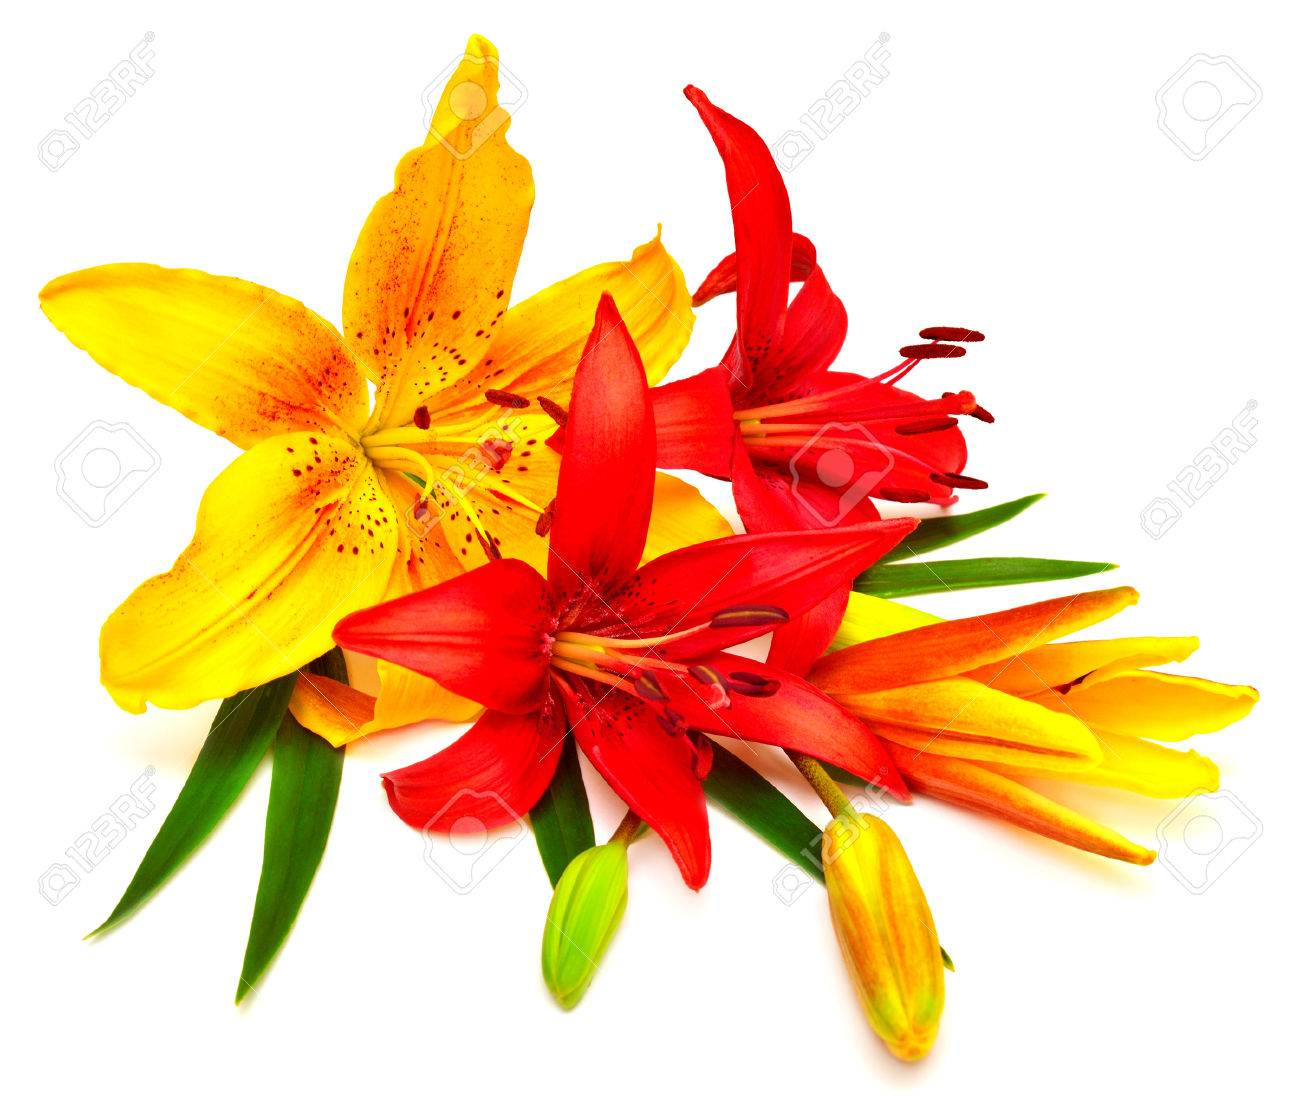 Bouquet of lilies red and yellow flowers isolated on white bouquet of lilies red and yellow flowers isolated on white background the holiday greeting card izmirmasajfo Gallery